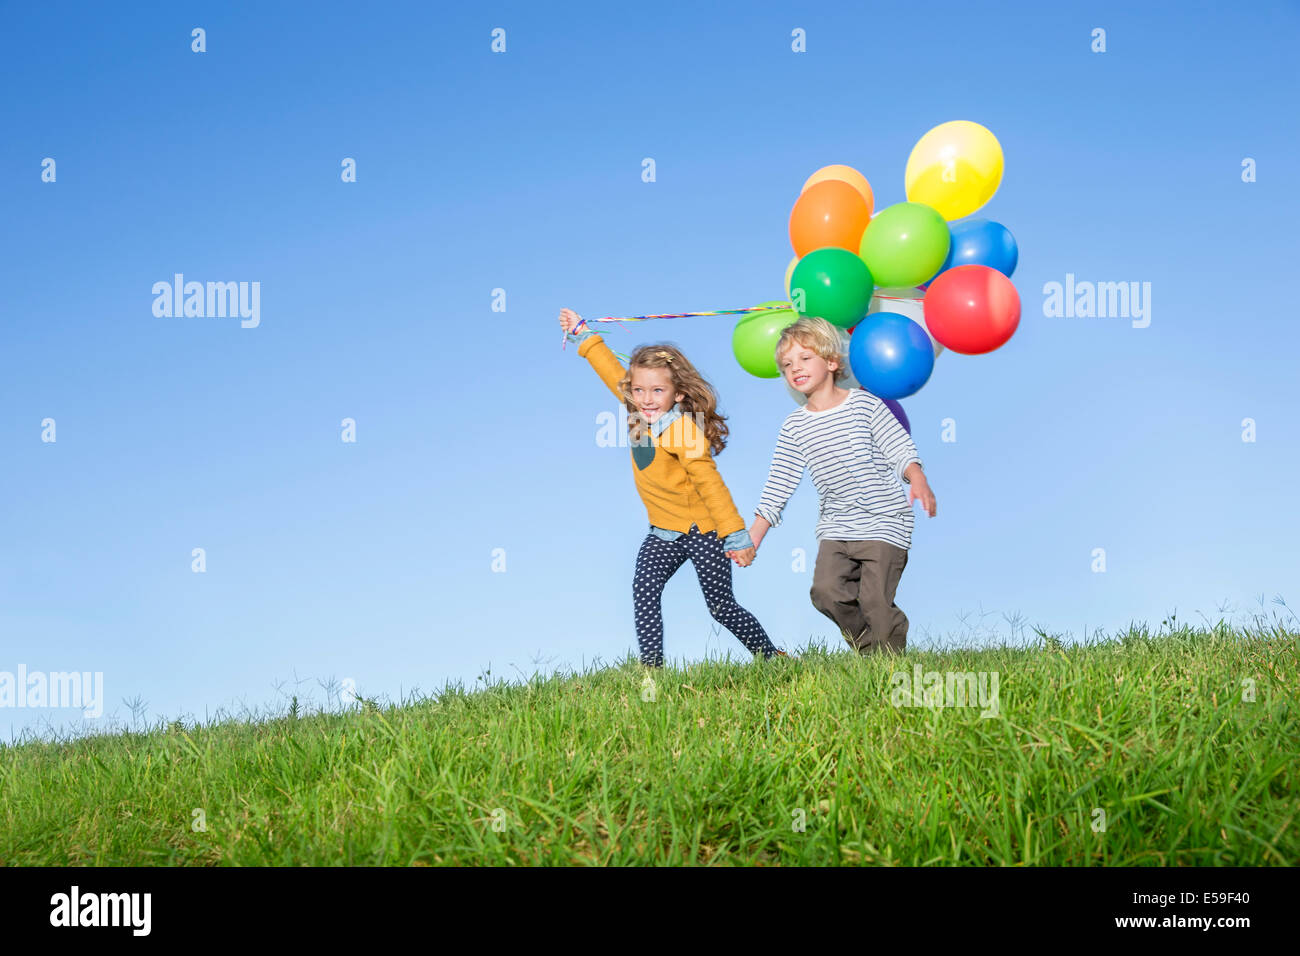 Children with bunch of balloons on grassy hill Stock Photo